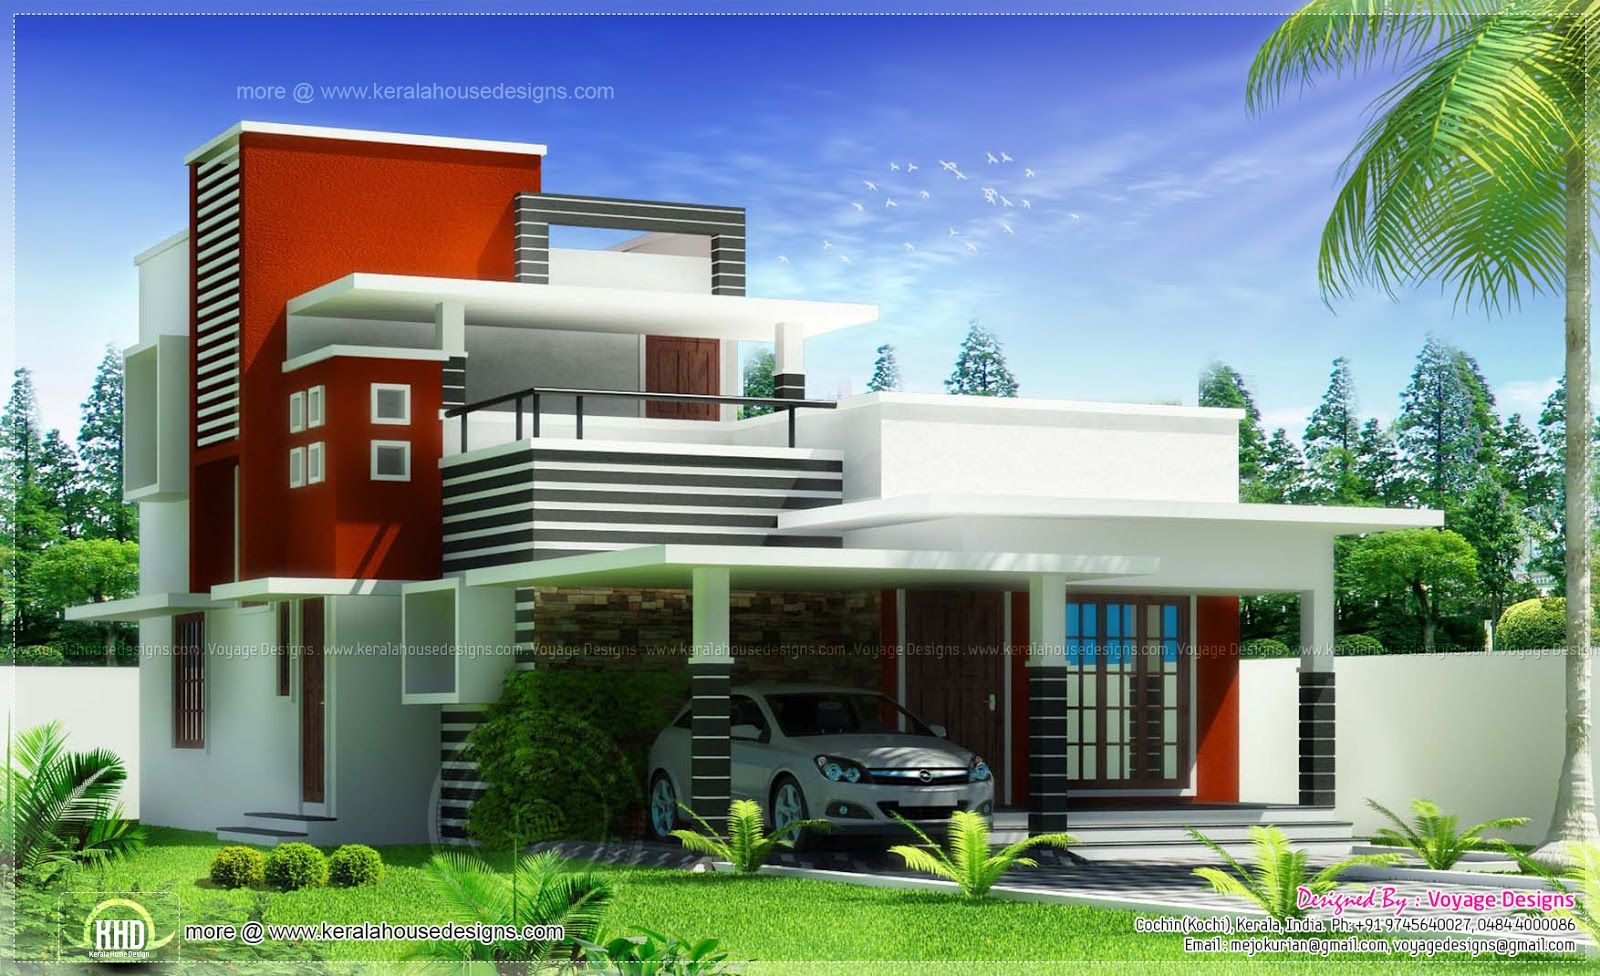 Kerala house designs architecture pinterest kerala for Contemporary model house